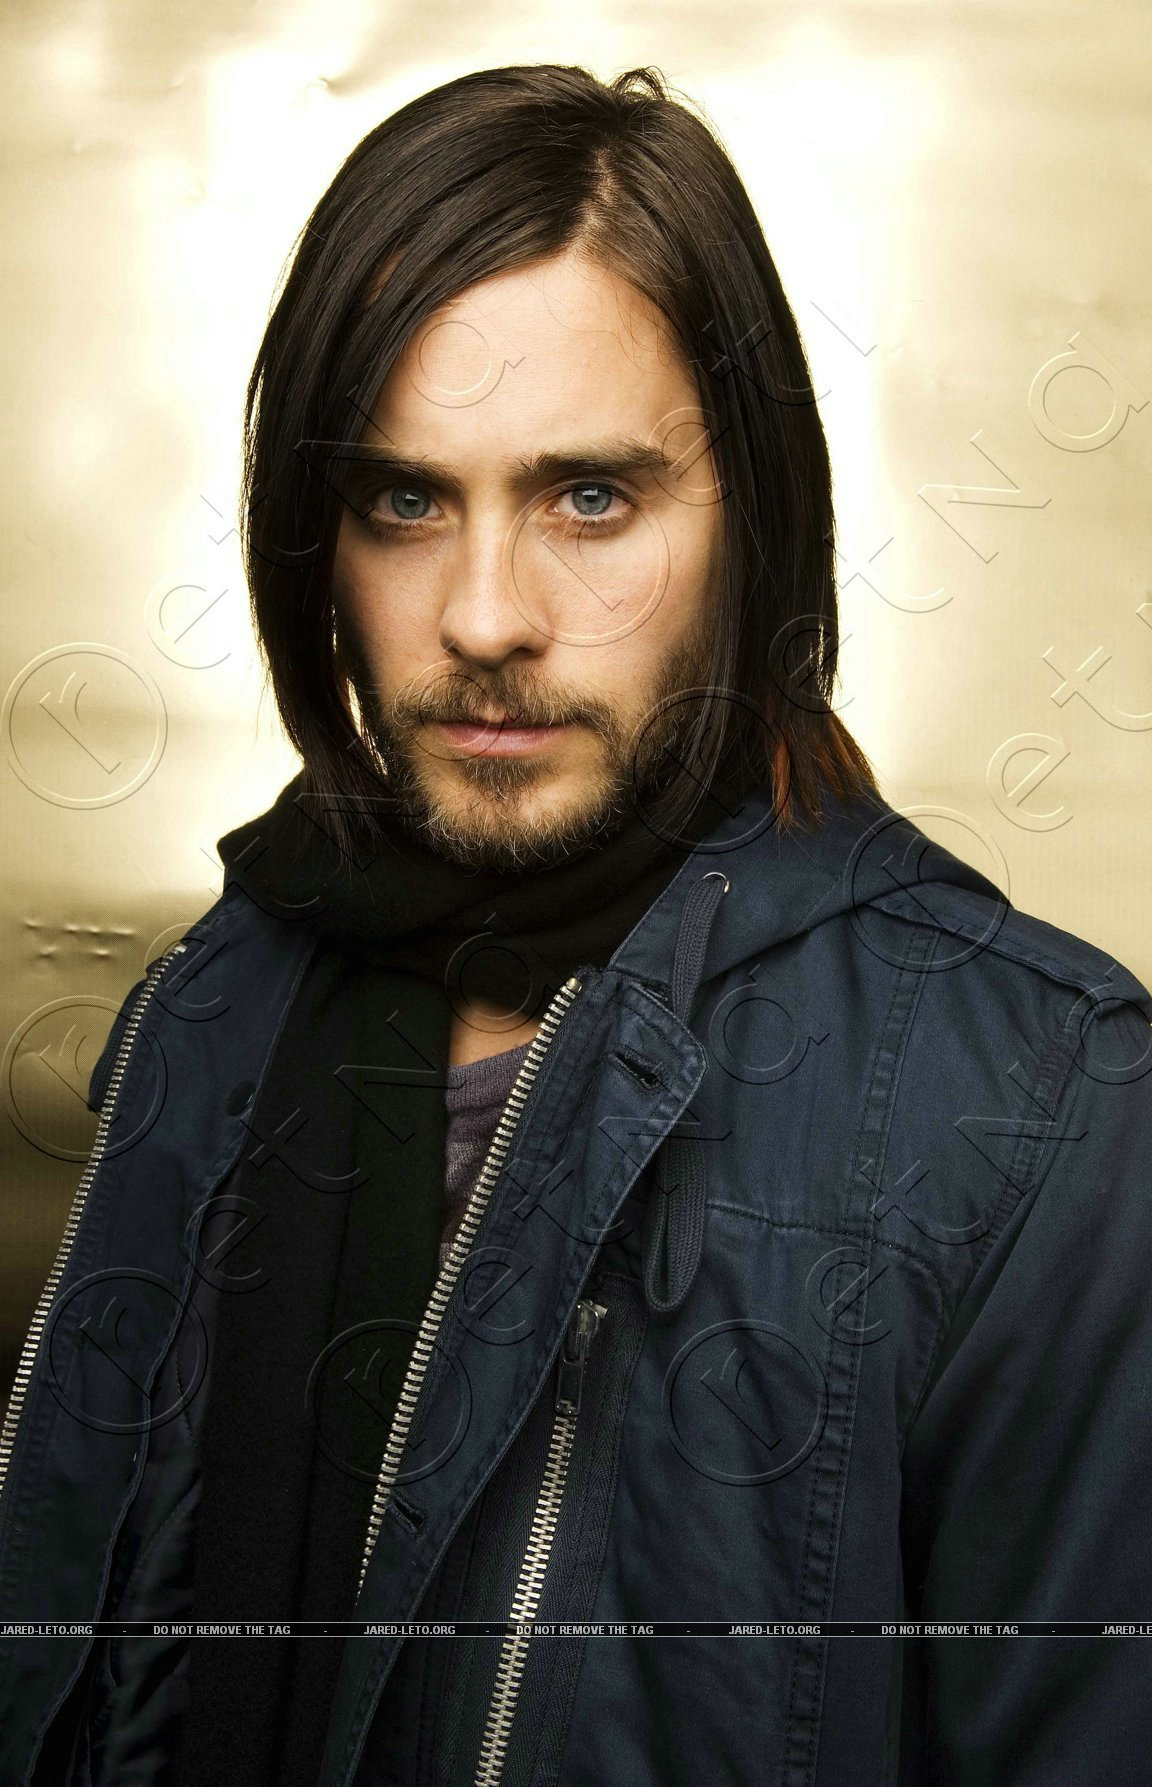 Jared Leto images Jared Leto HD wallpaper and background ... Jared Leto